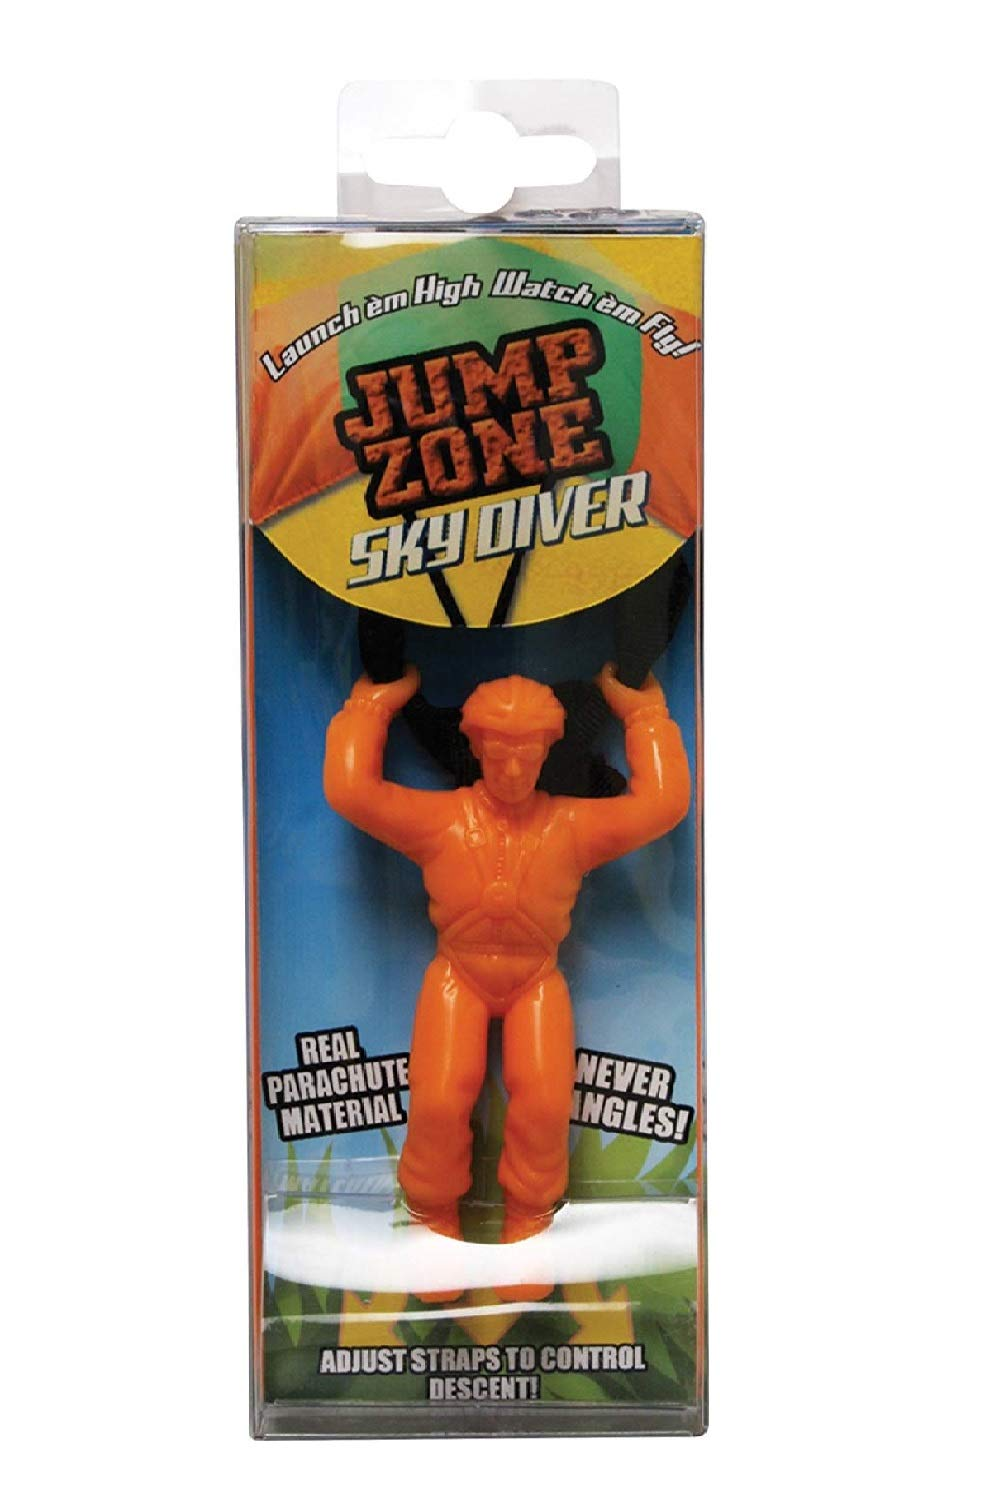 Prime Time Toys Jump Zone The Original Sky Diver 15 Pack Individually Package(Colors Vary) by Prime Time Toys